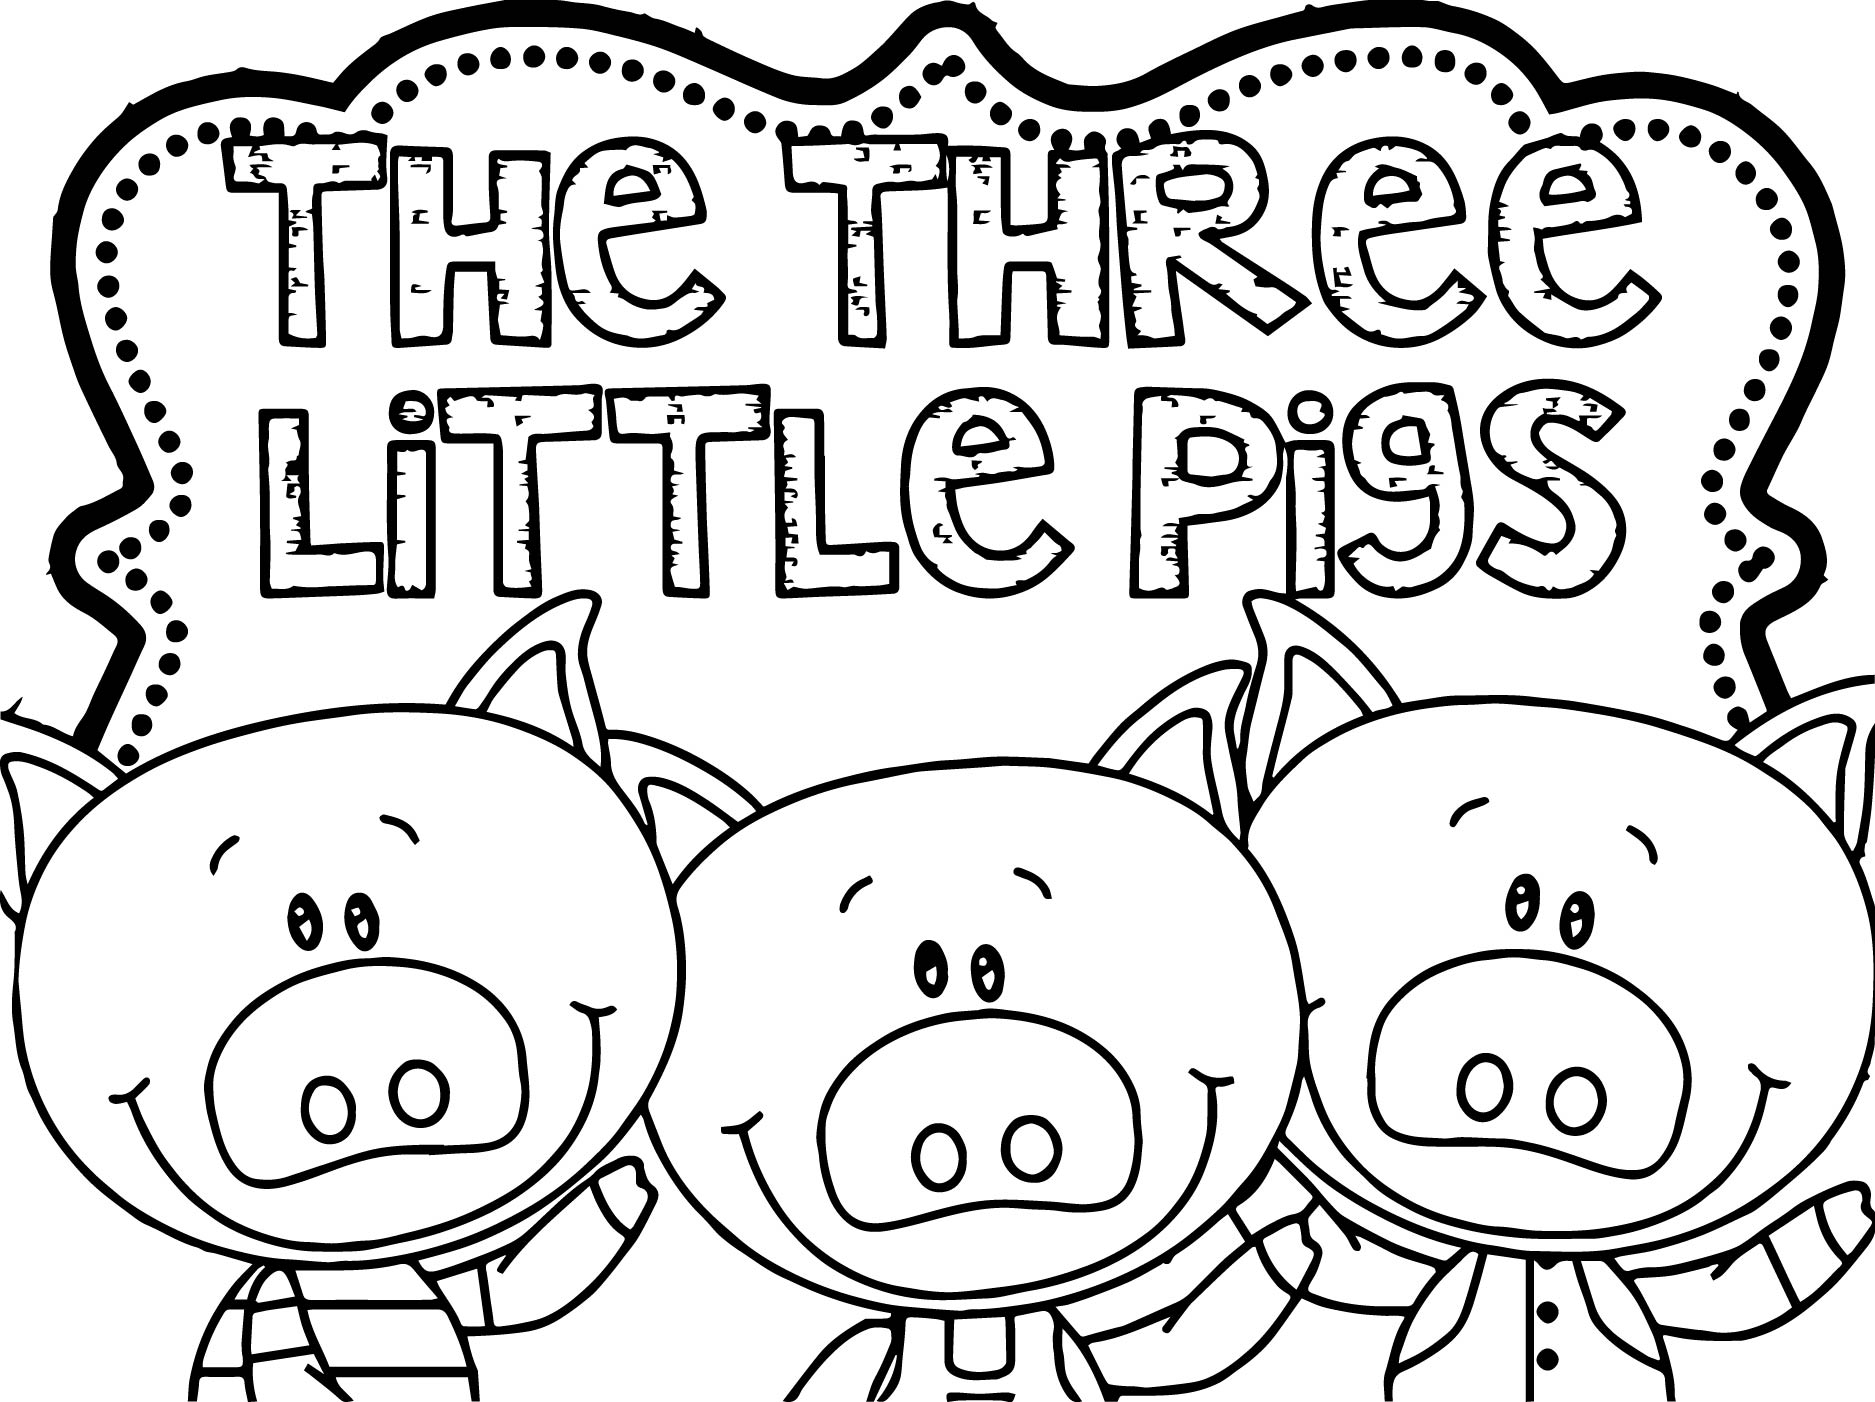 Coloring pages 3 little pigs - Three Little Pigs Coloring Page